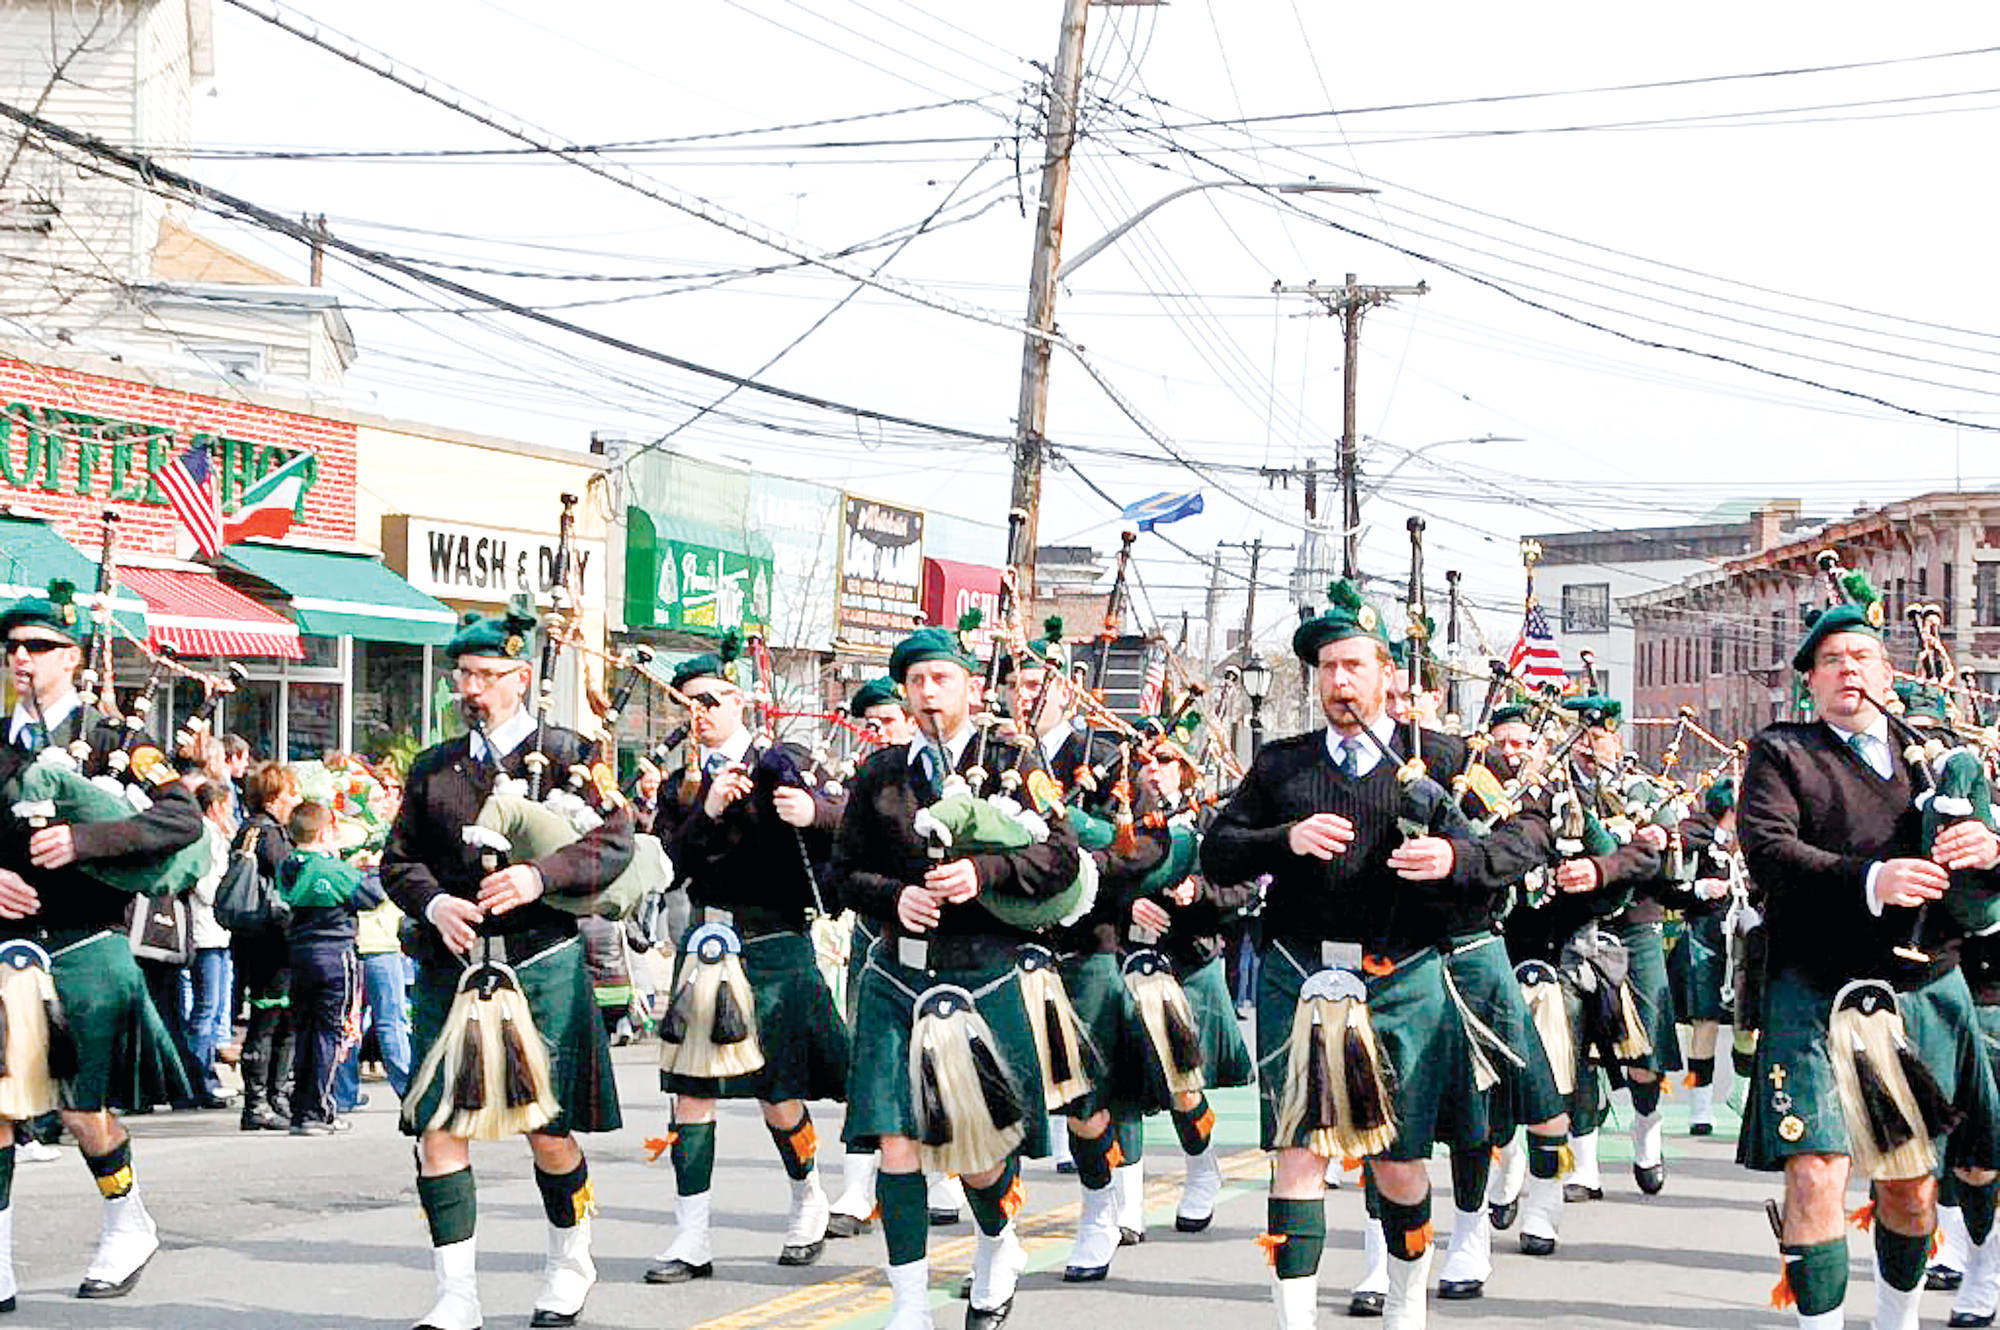 Manhattan College marchers sported kilts in their school colors.